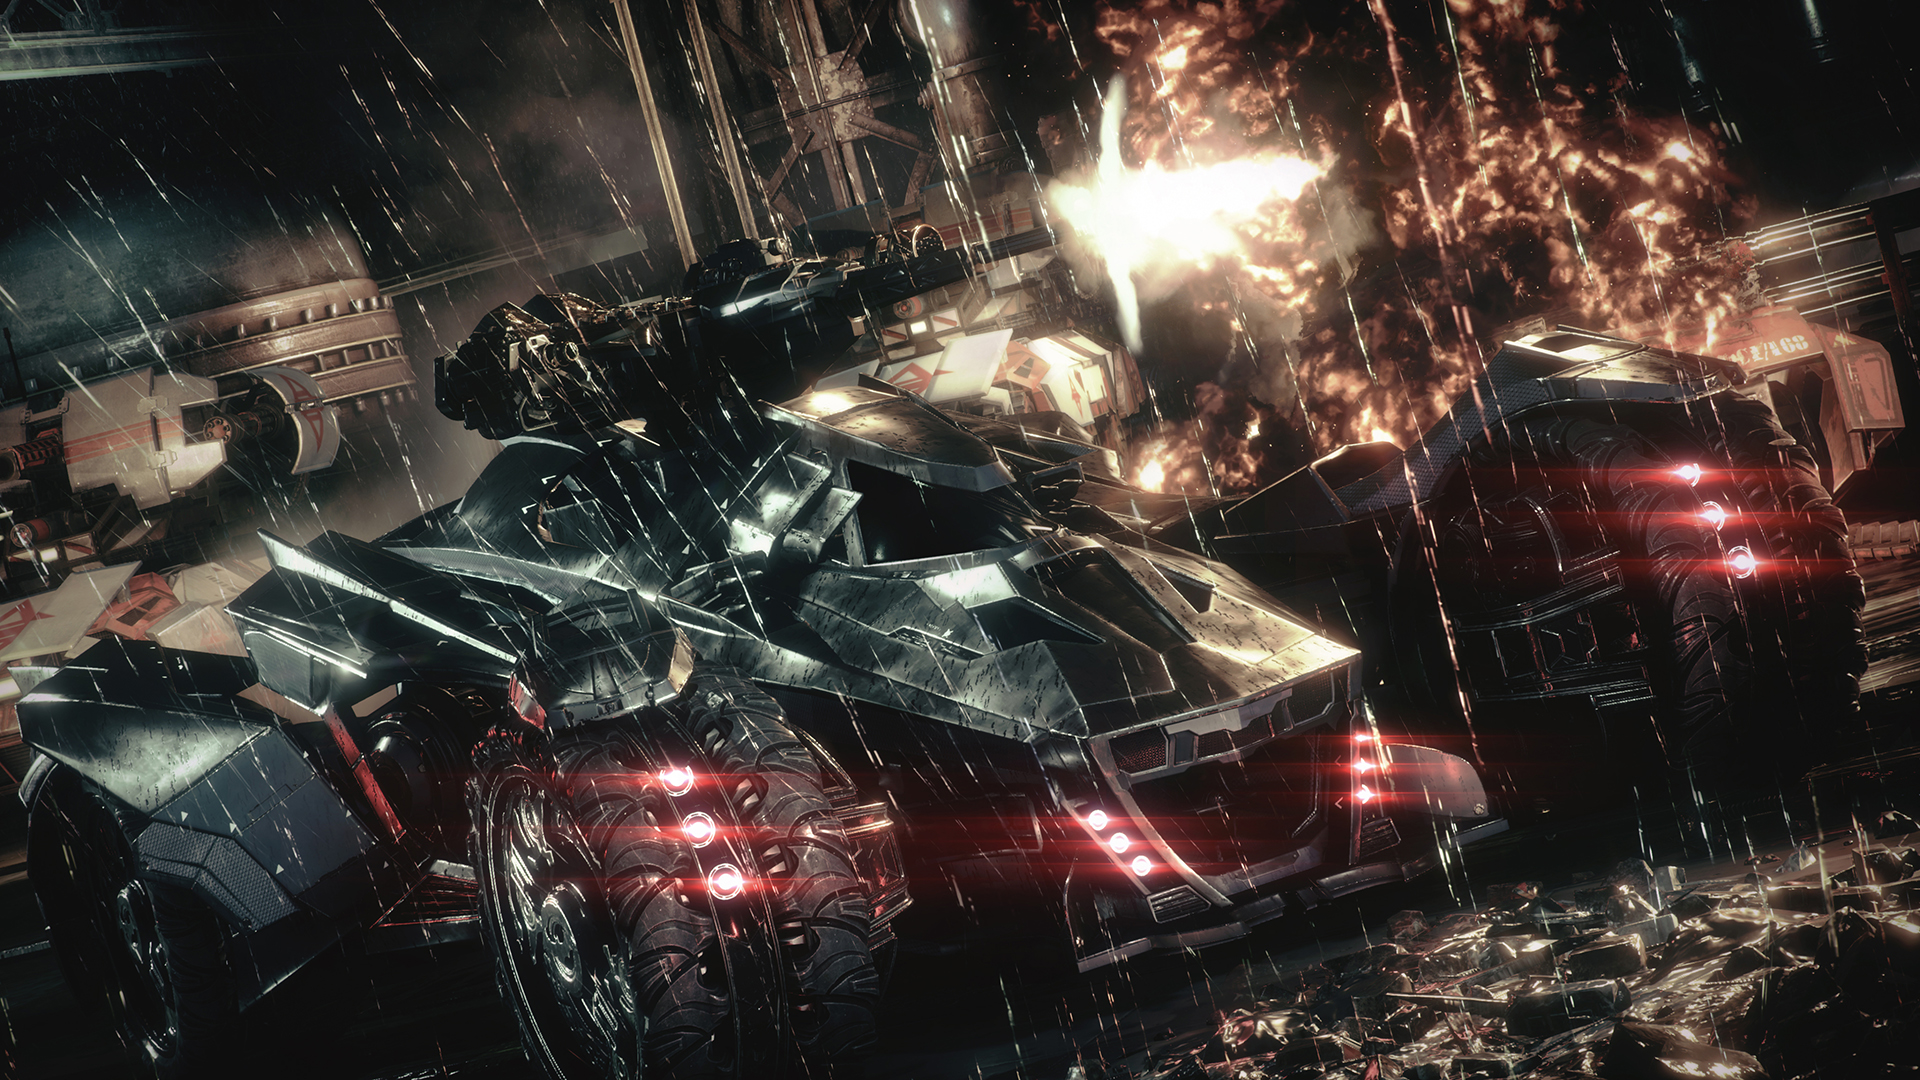 The Batmobile Looks Badass In These Batman Arkham Knight